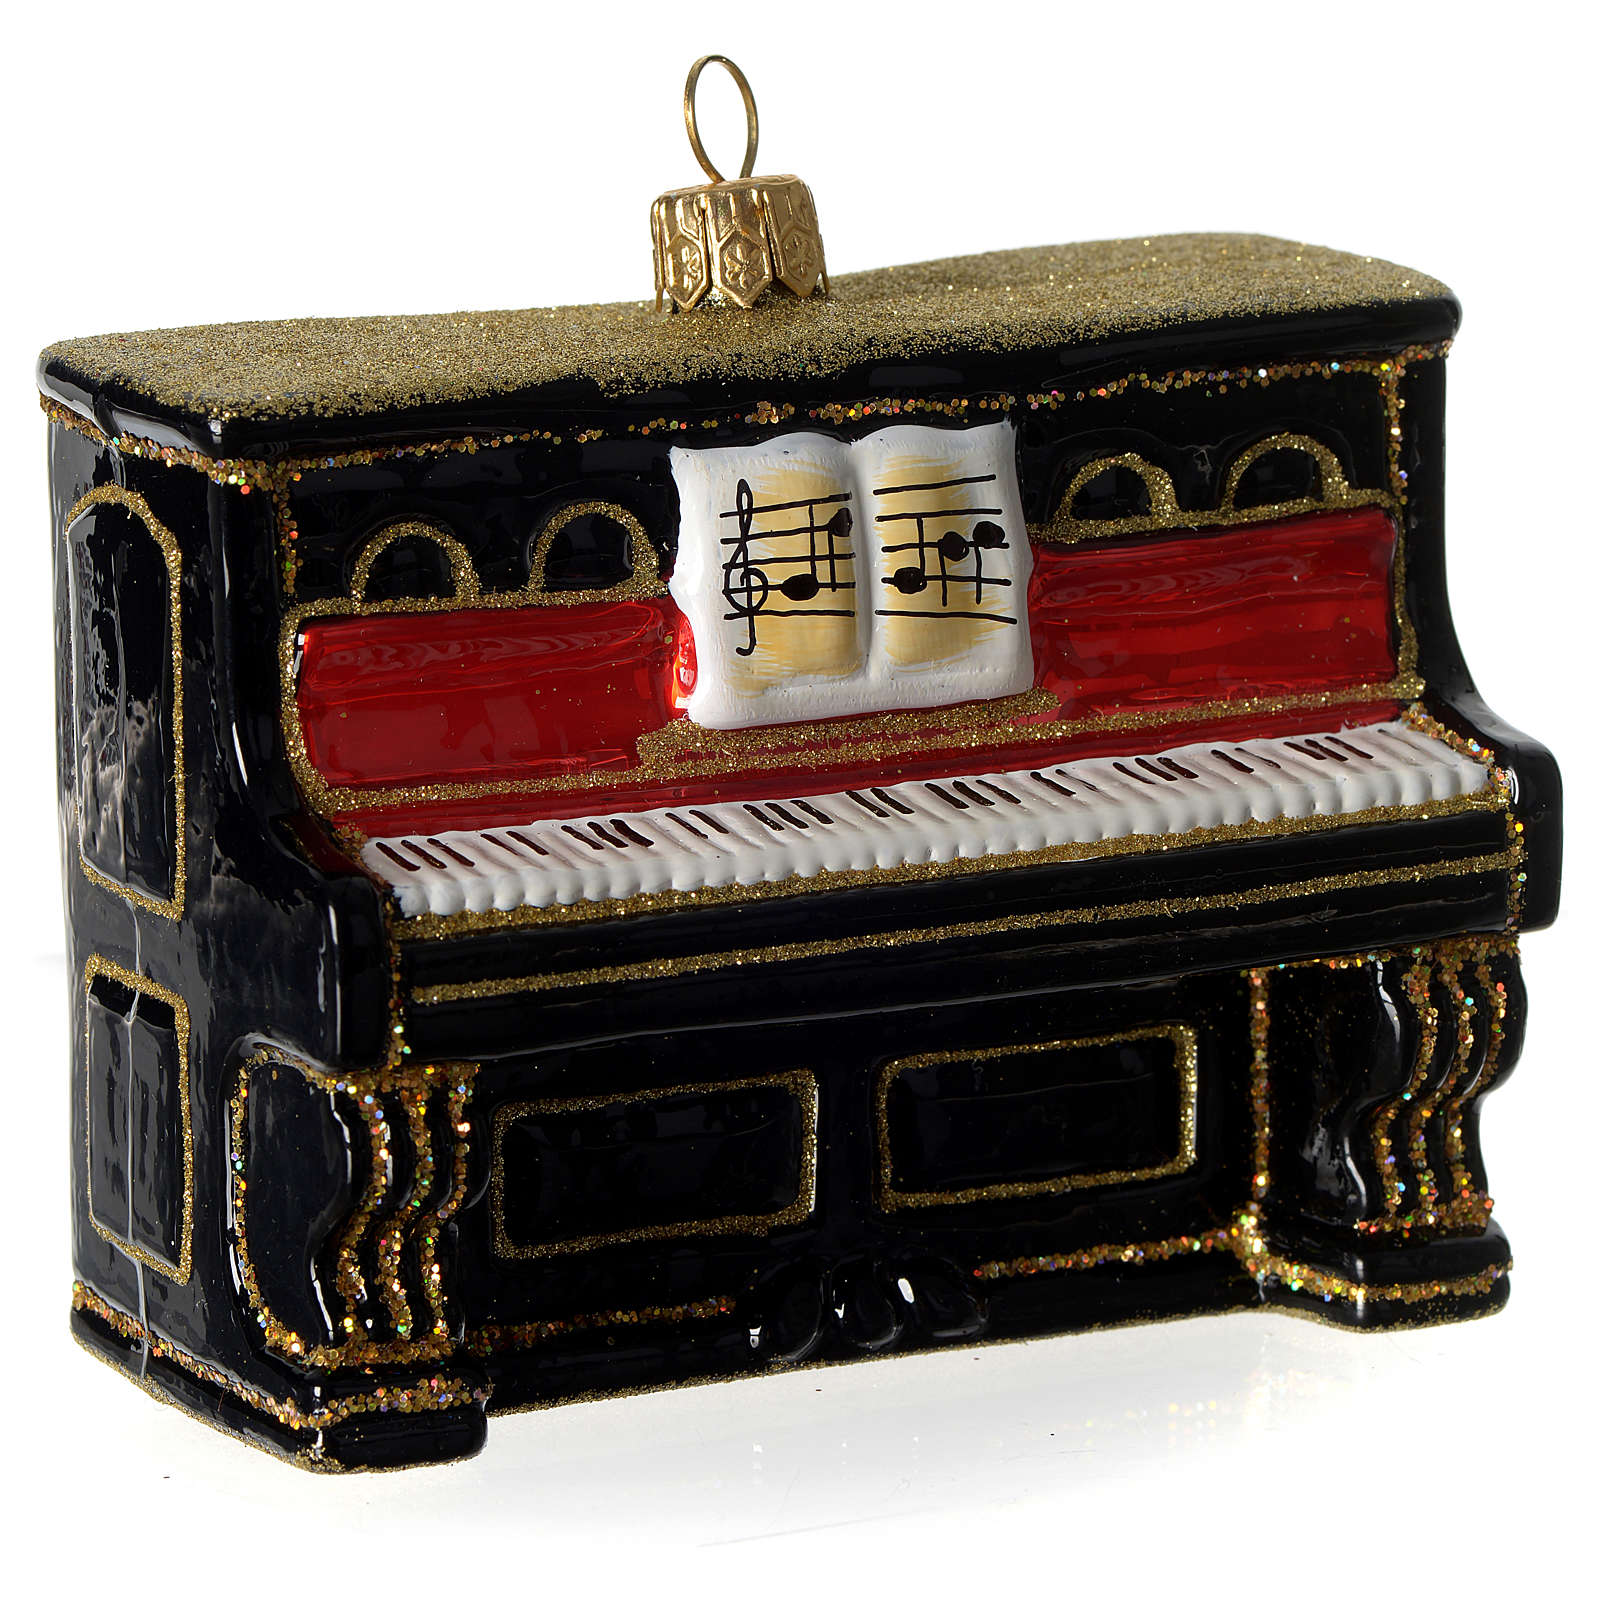 Piano blown glass Christmas decorations 4